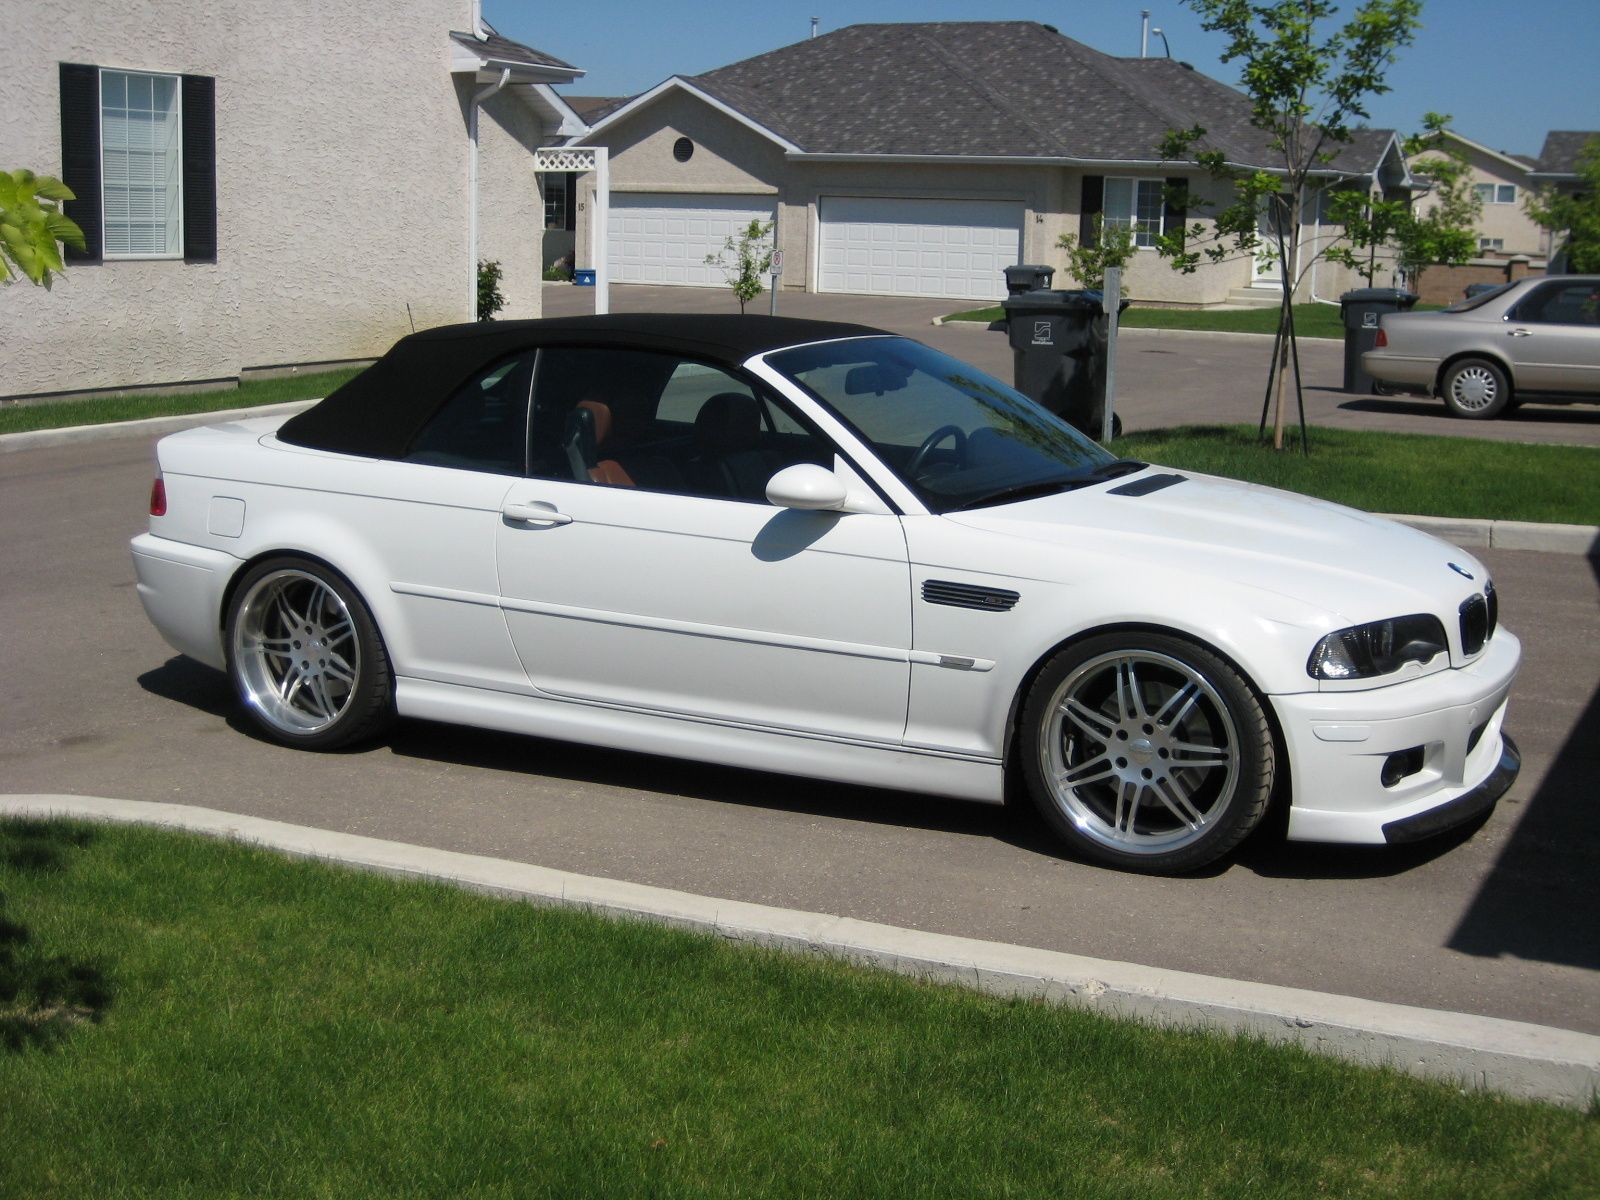 2004 Bmw M3 Pictures Cargurus Bmw Convertible Bmw Bmw M3 Convertible